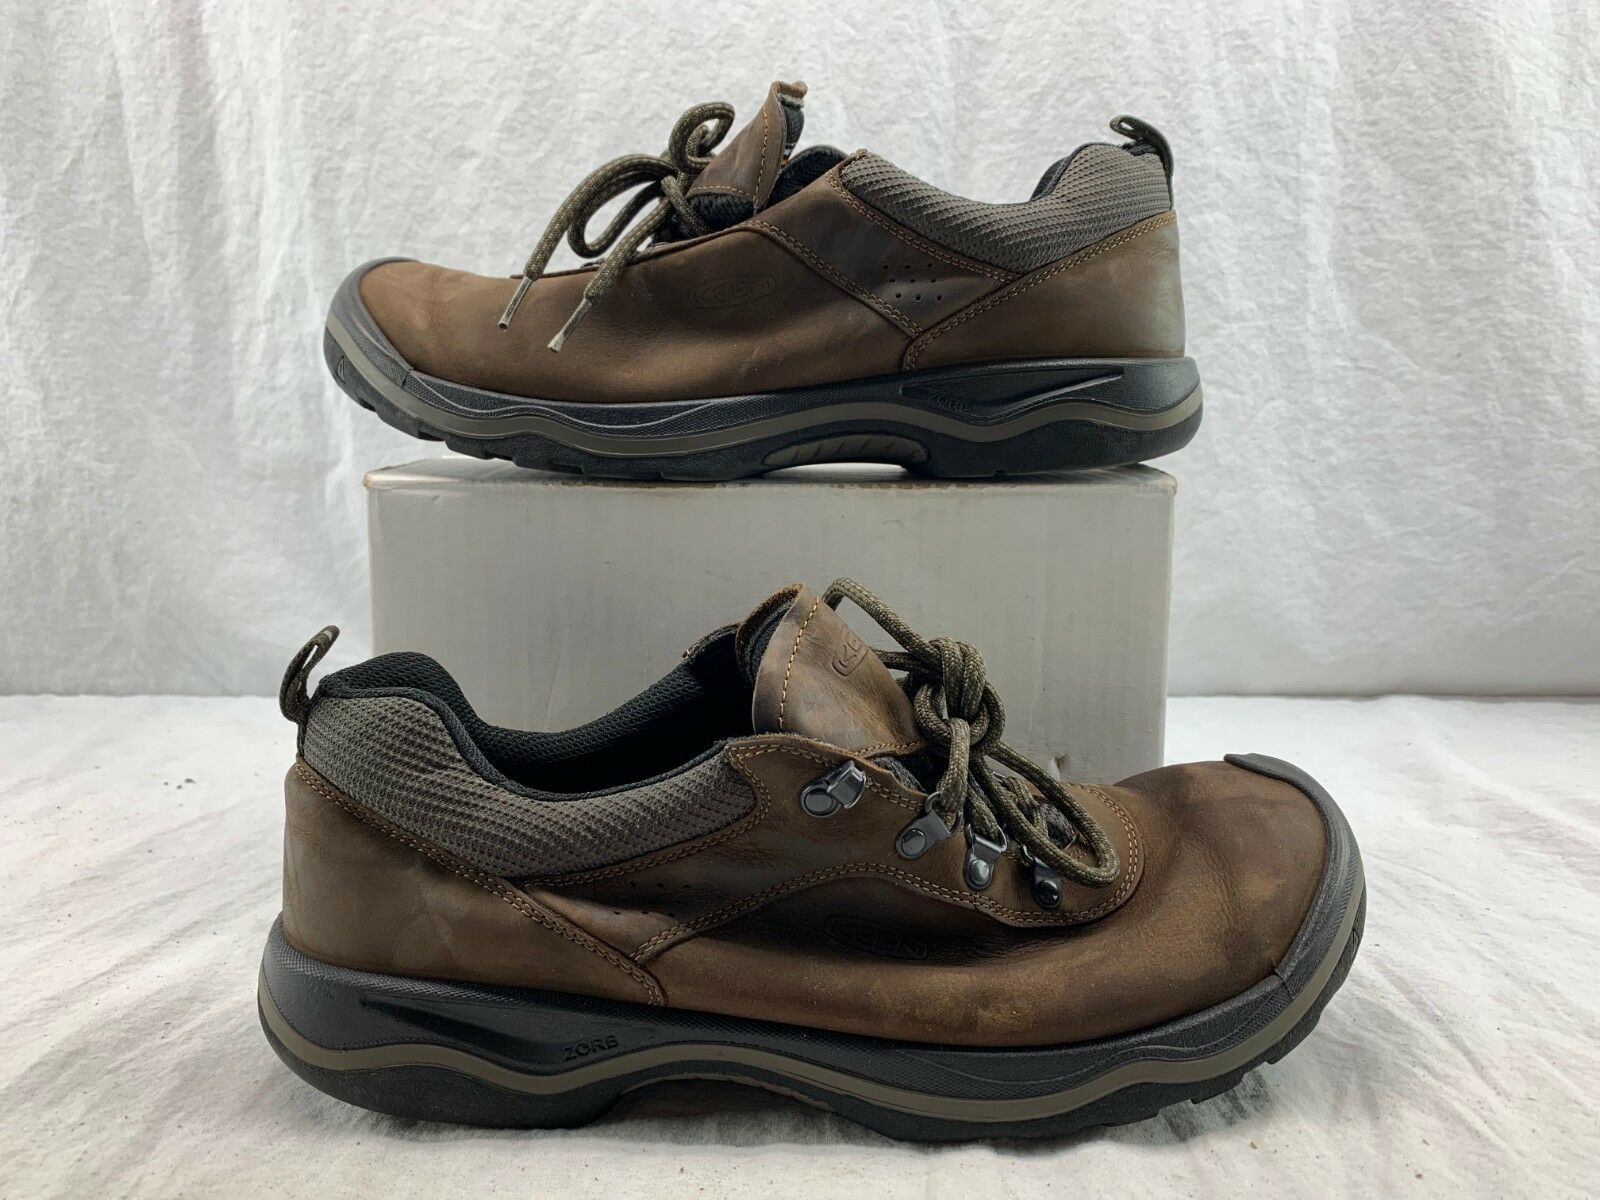 Keen Men's Rialto Lace Water-resistant shoes Boot 1017425 Dark Earth SIZE 13